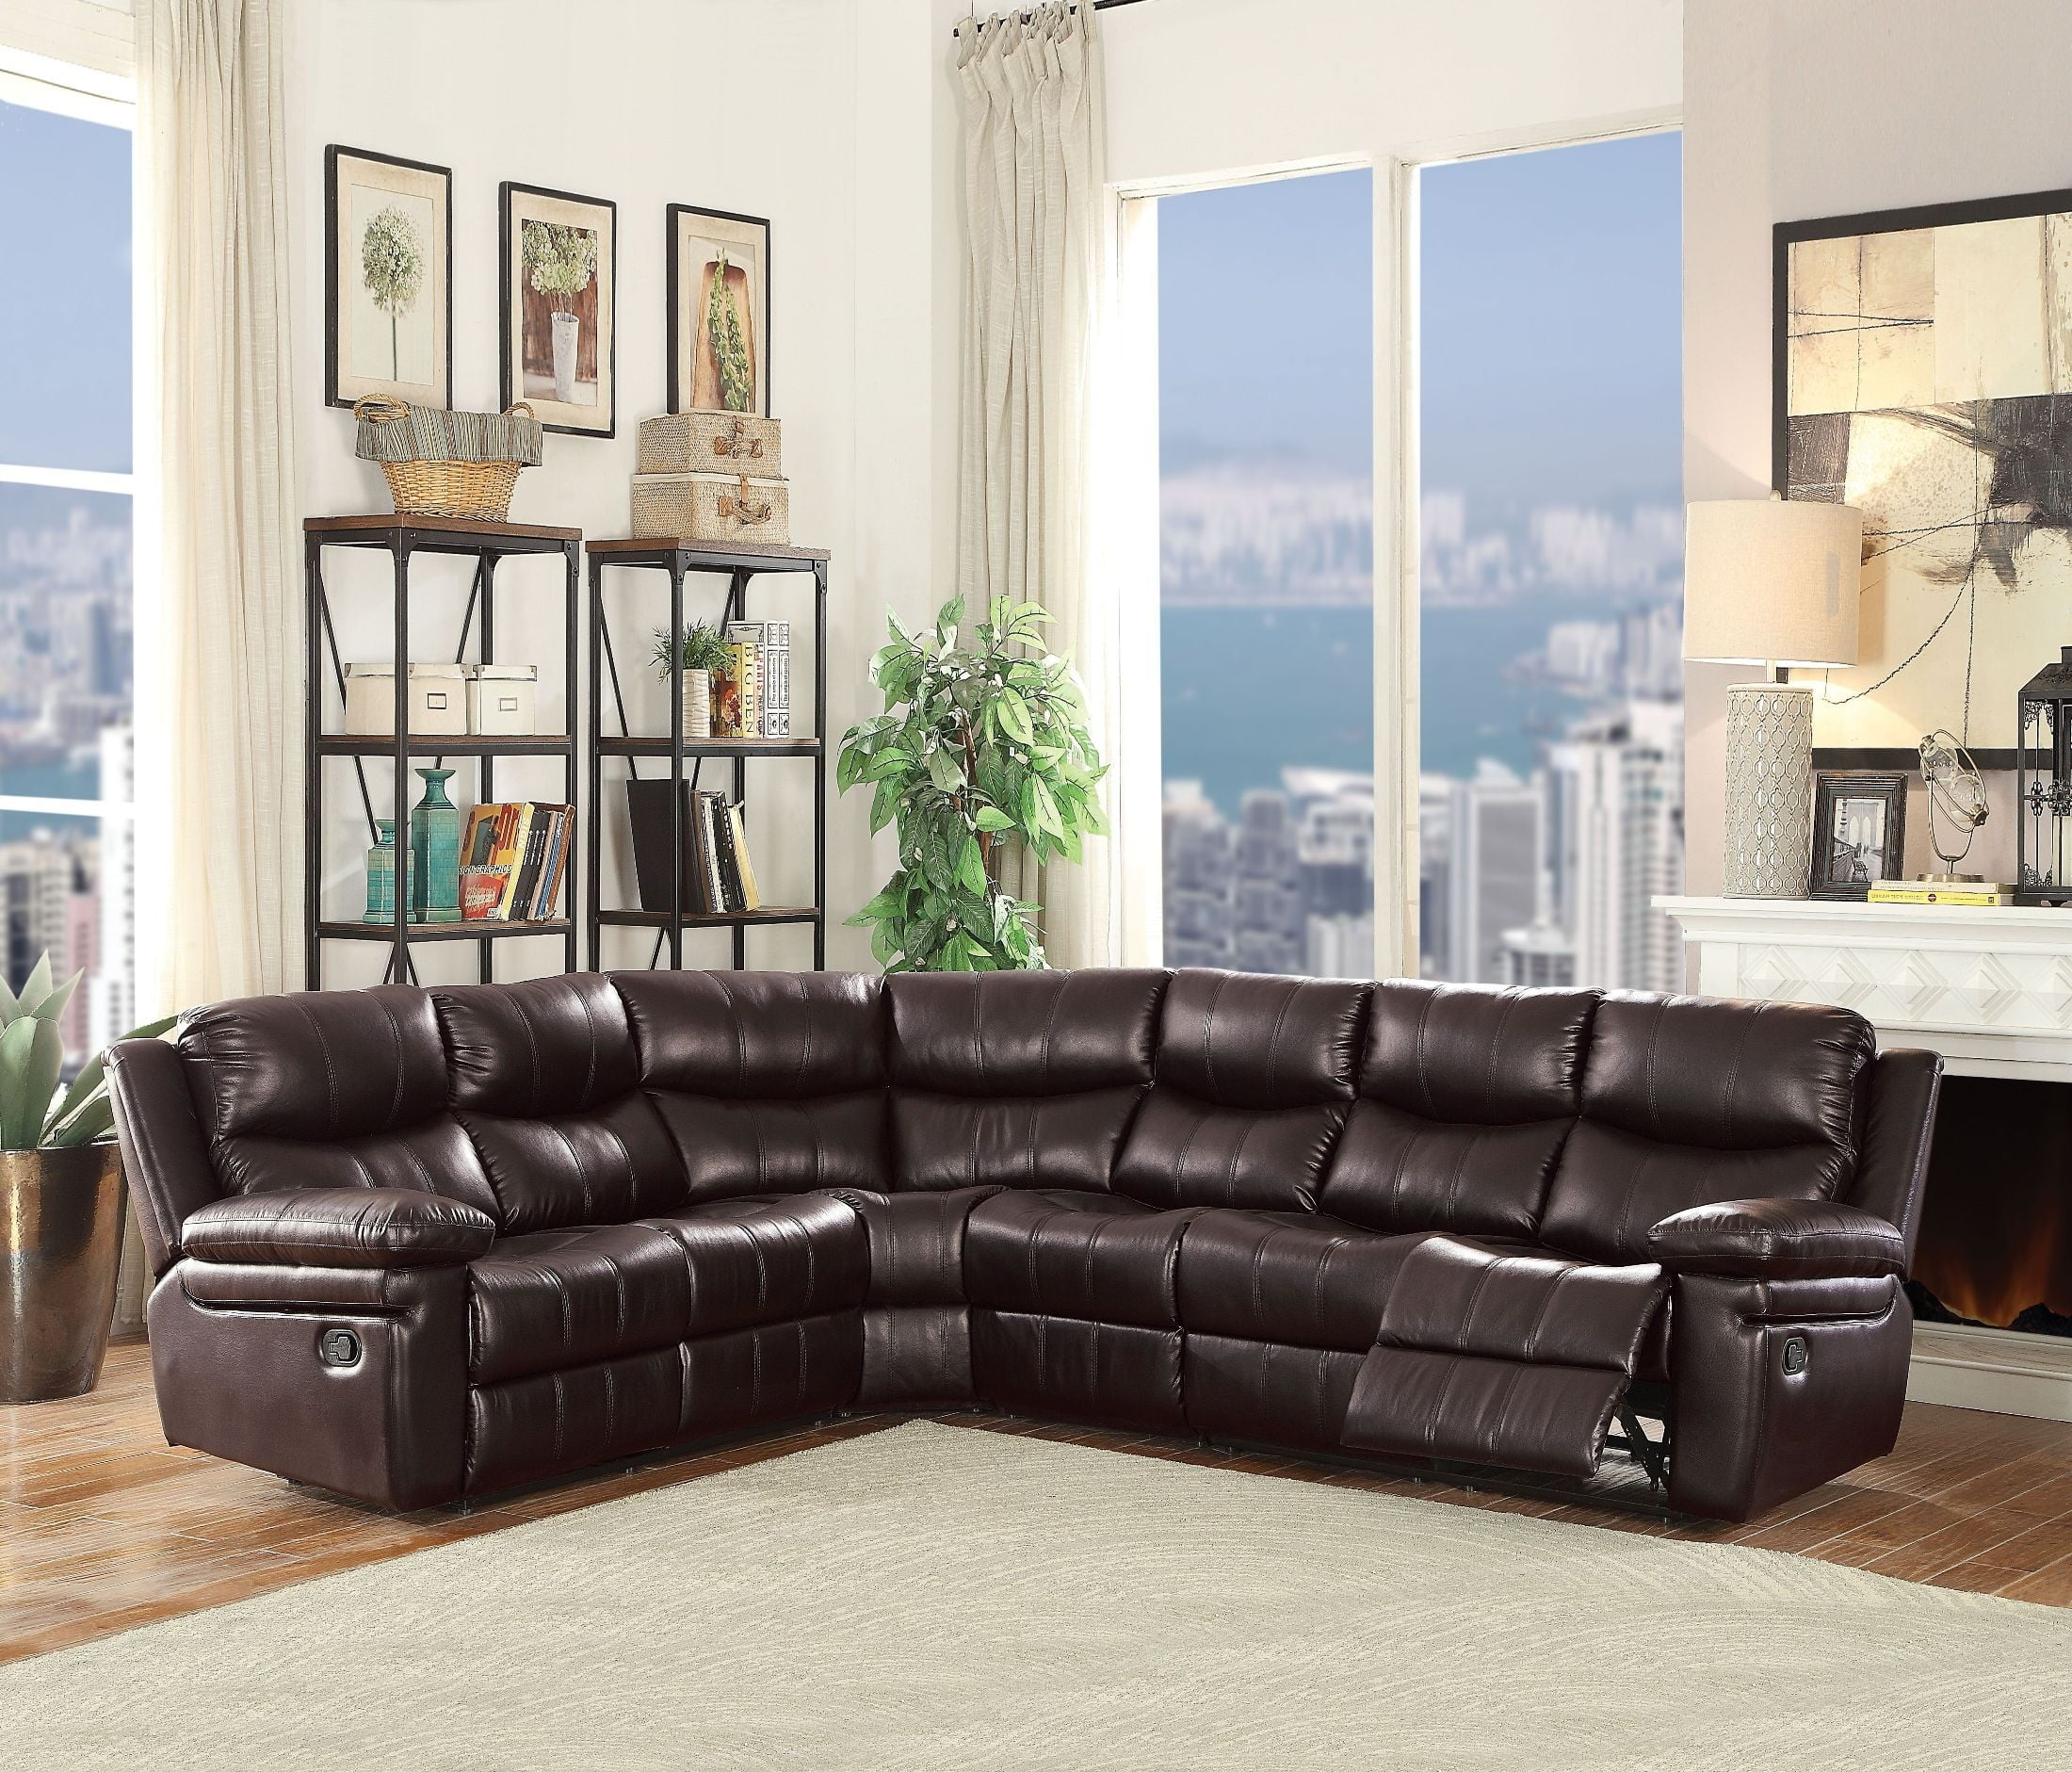 sectionals sleeper real inspirational shaped reclining to cup l cheap leather lounge couch size microfiber sofa sectional full holders of where white with piece buy chaise sofas luxury furniture corner edmonton microsuede gray